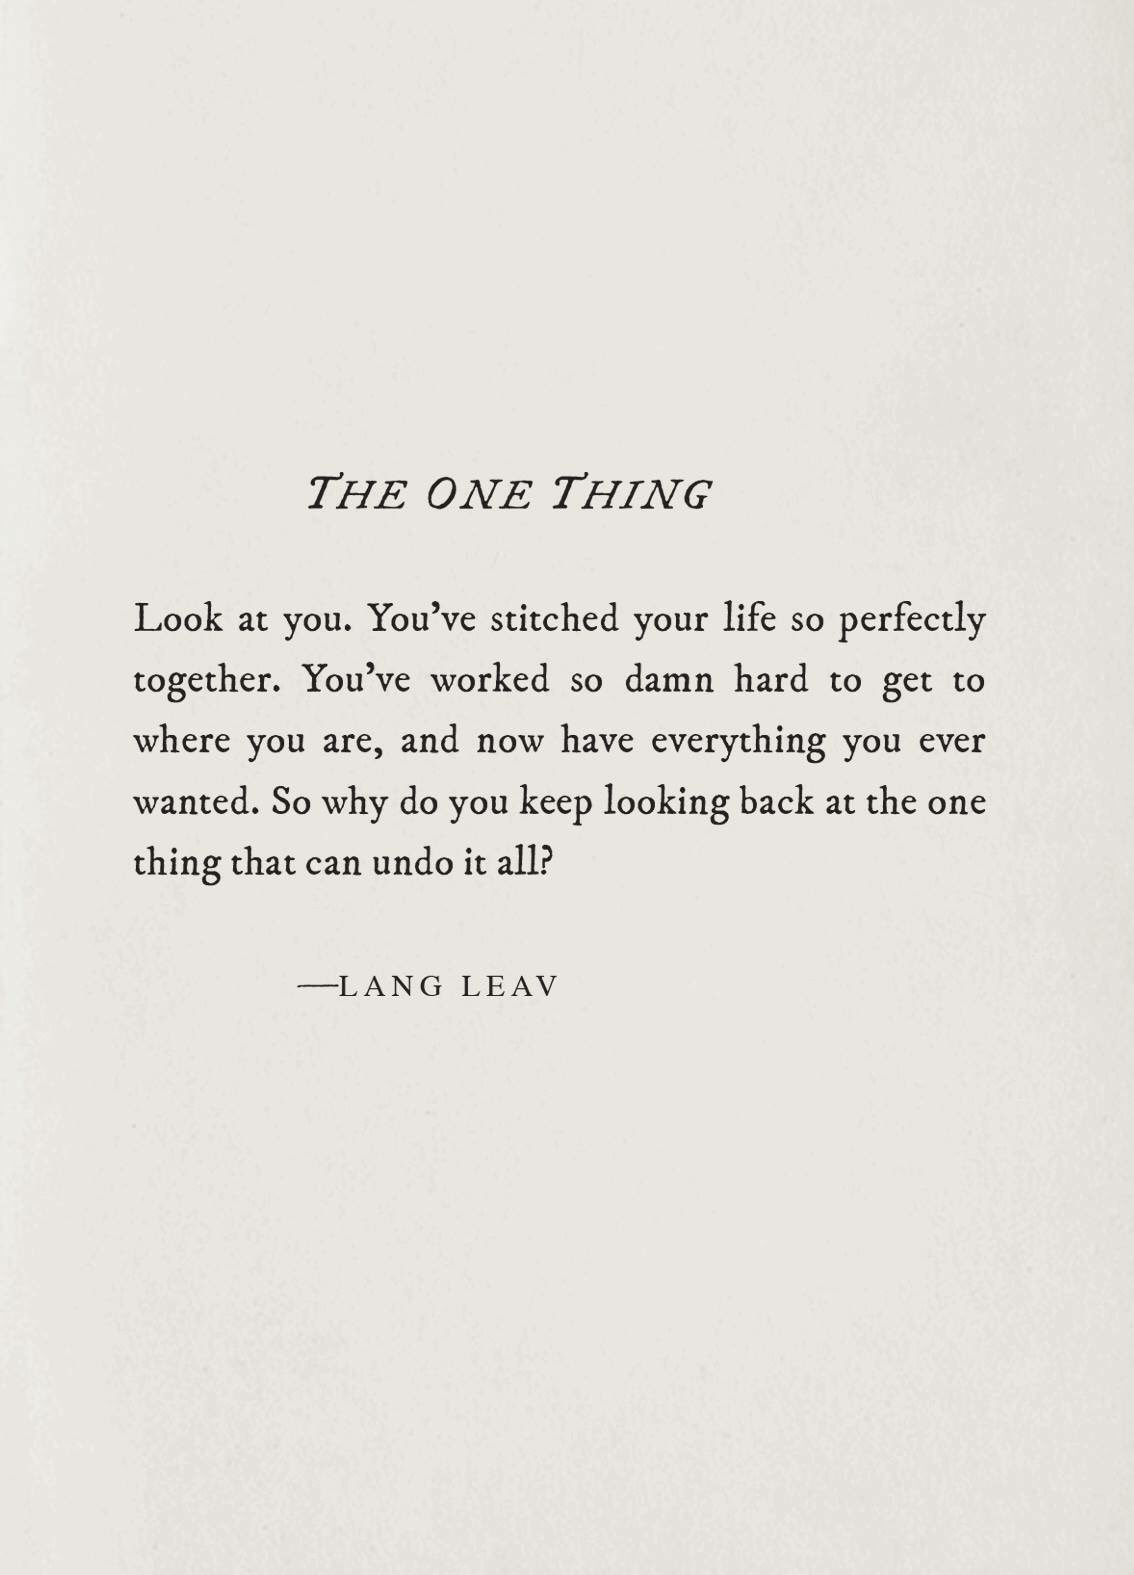 [Image] The One Thing :)